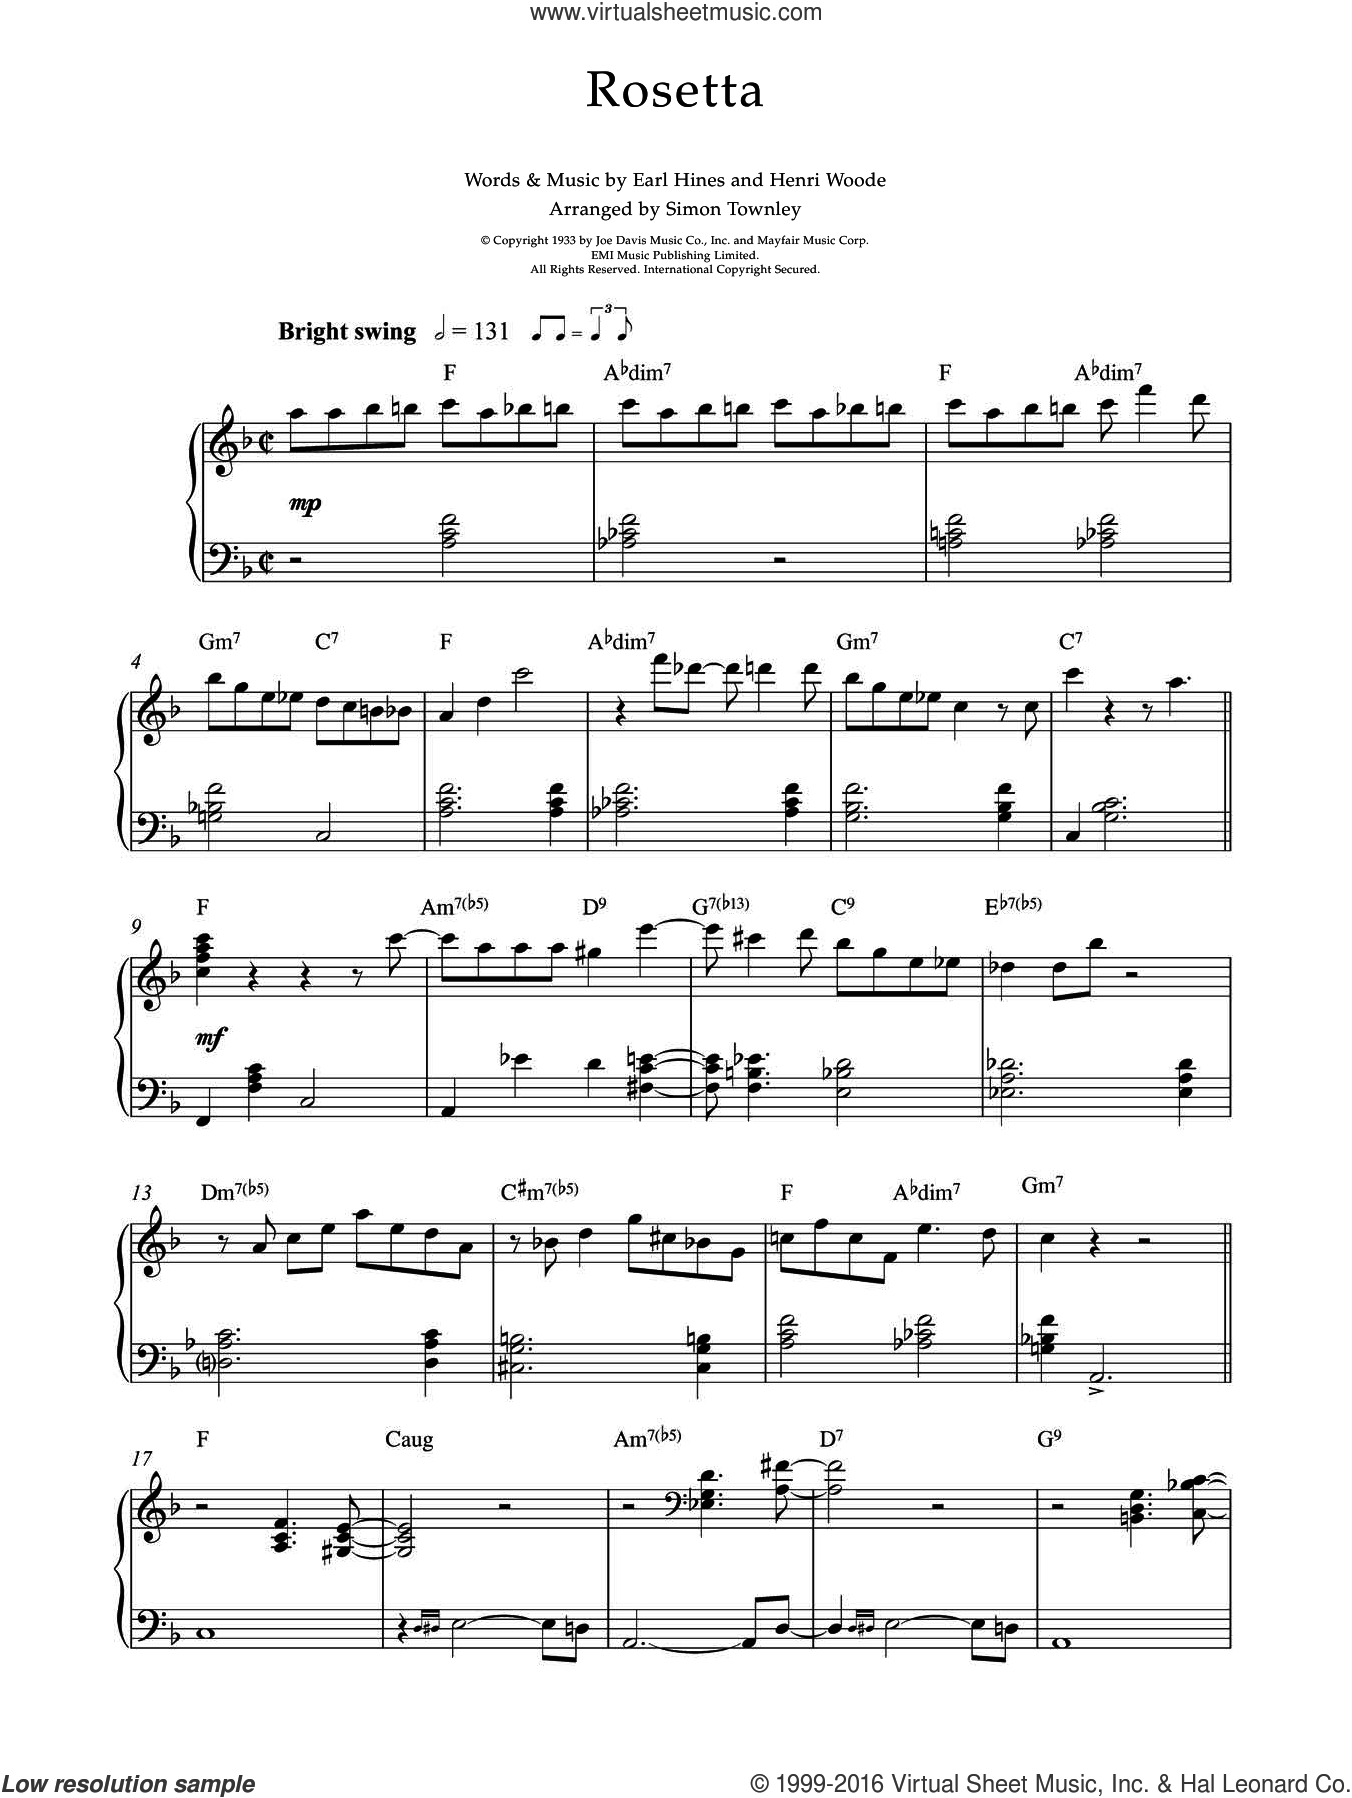 Rosetta sheet music for piano solo by Earl Hines and Henri Woode, intermediate skill level